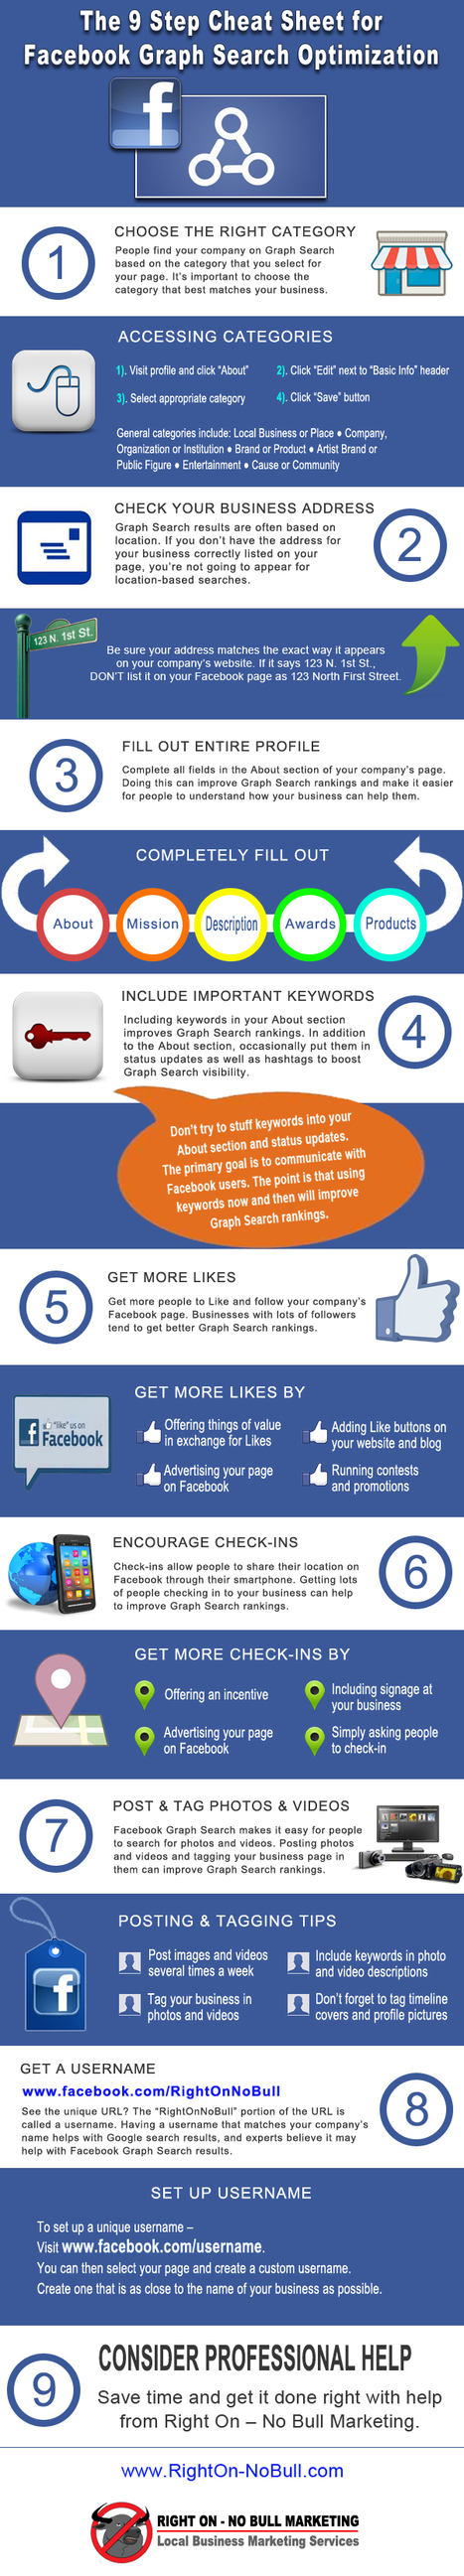 9 Steps for Facebook Graph Search Optimization [INFOGRAPHIC] | DV8 Digital Marketing Tips and Insight | Scoop.it